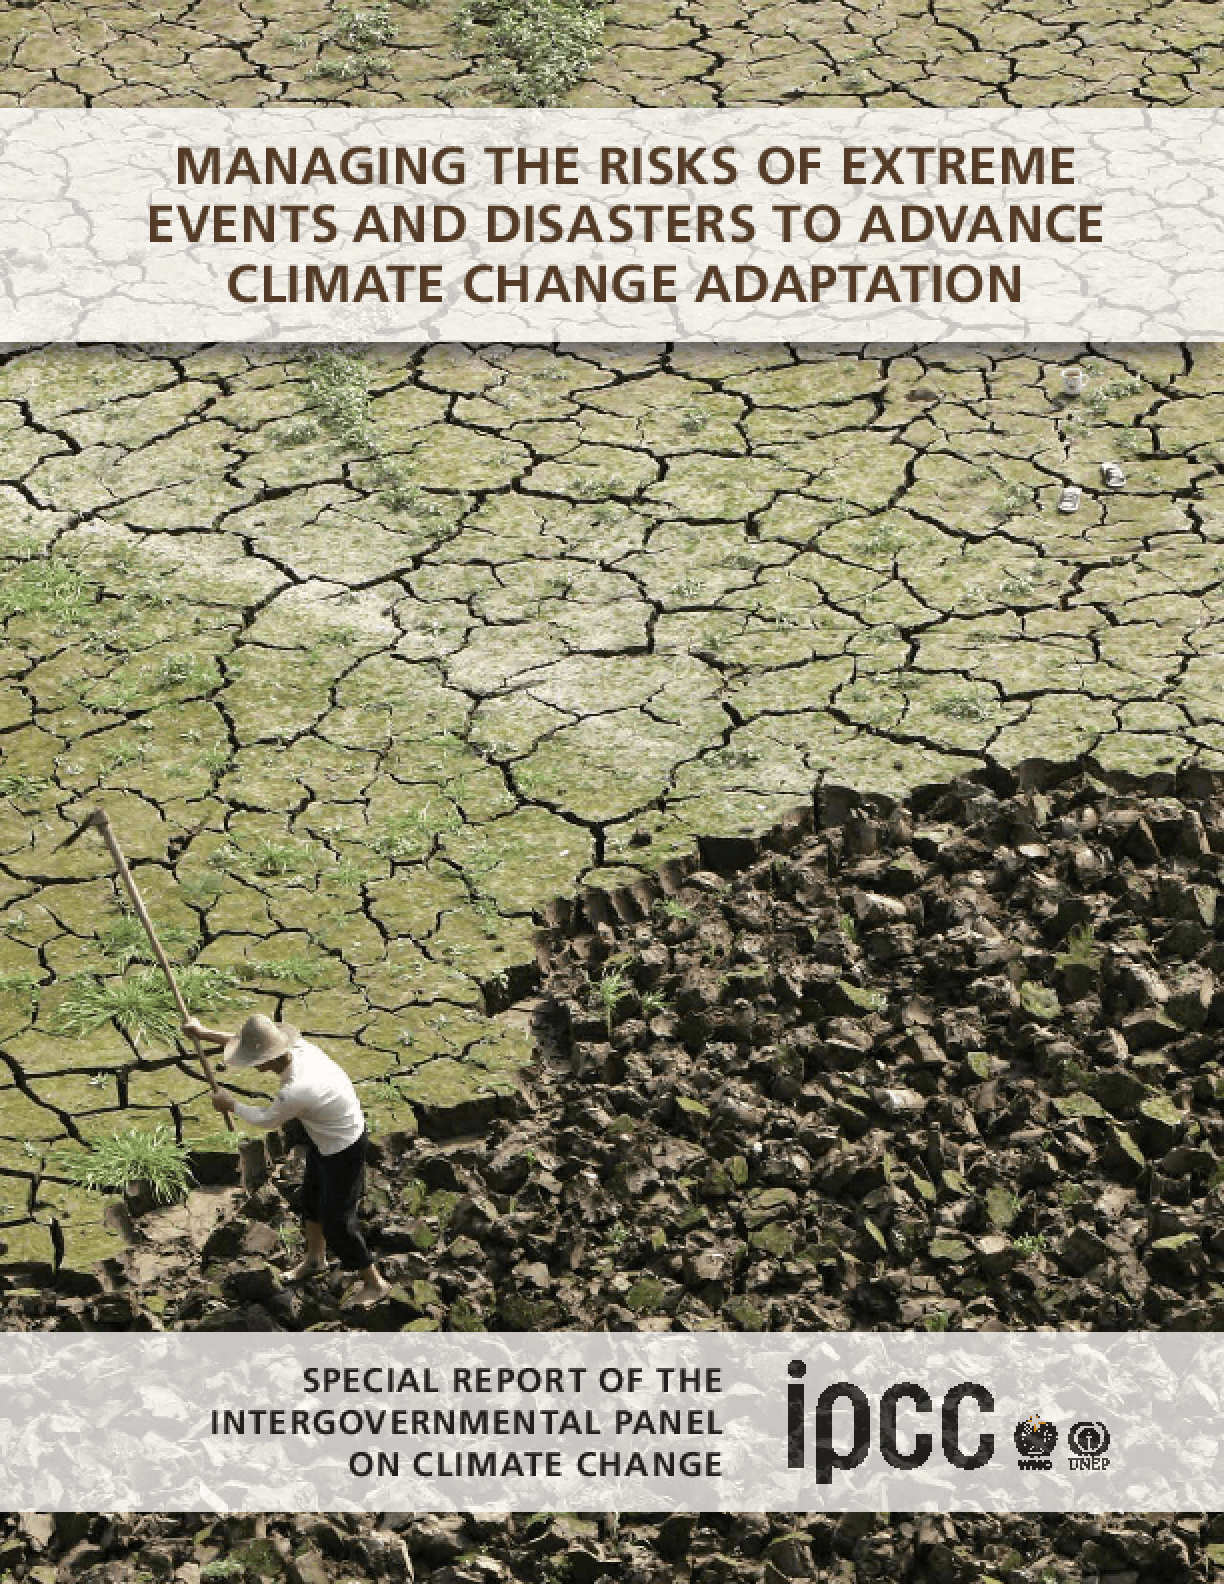 Managing the Risks of Extreme Events and Disasters to Advance Climate Change Adaptation: Special Report of the Intergovernmental Panel on Climate Change